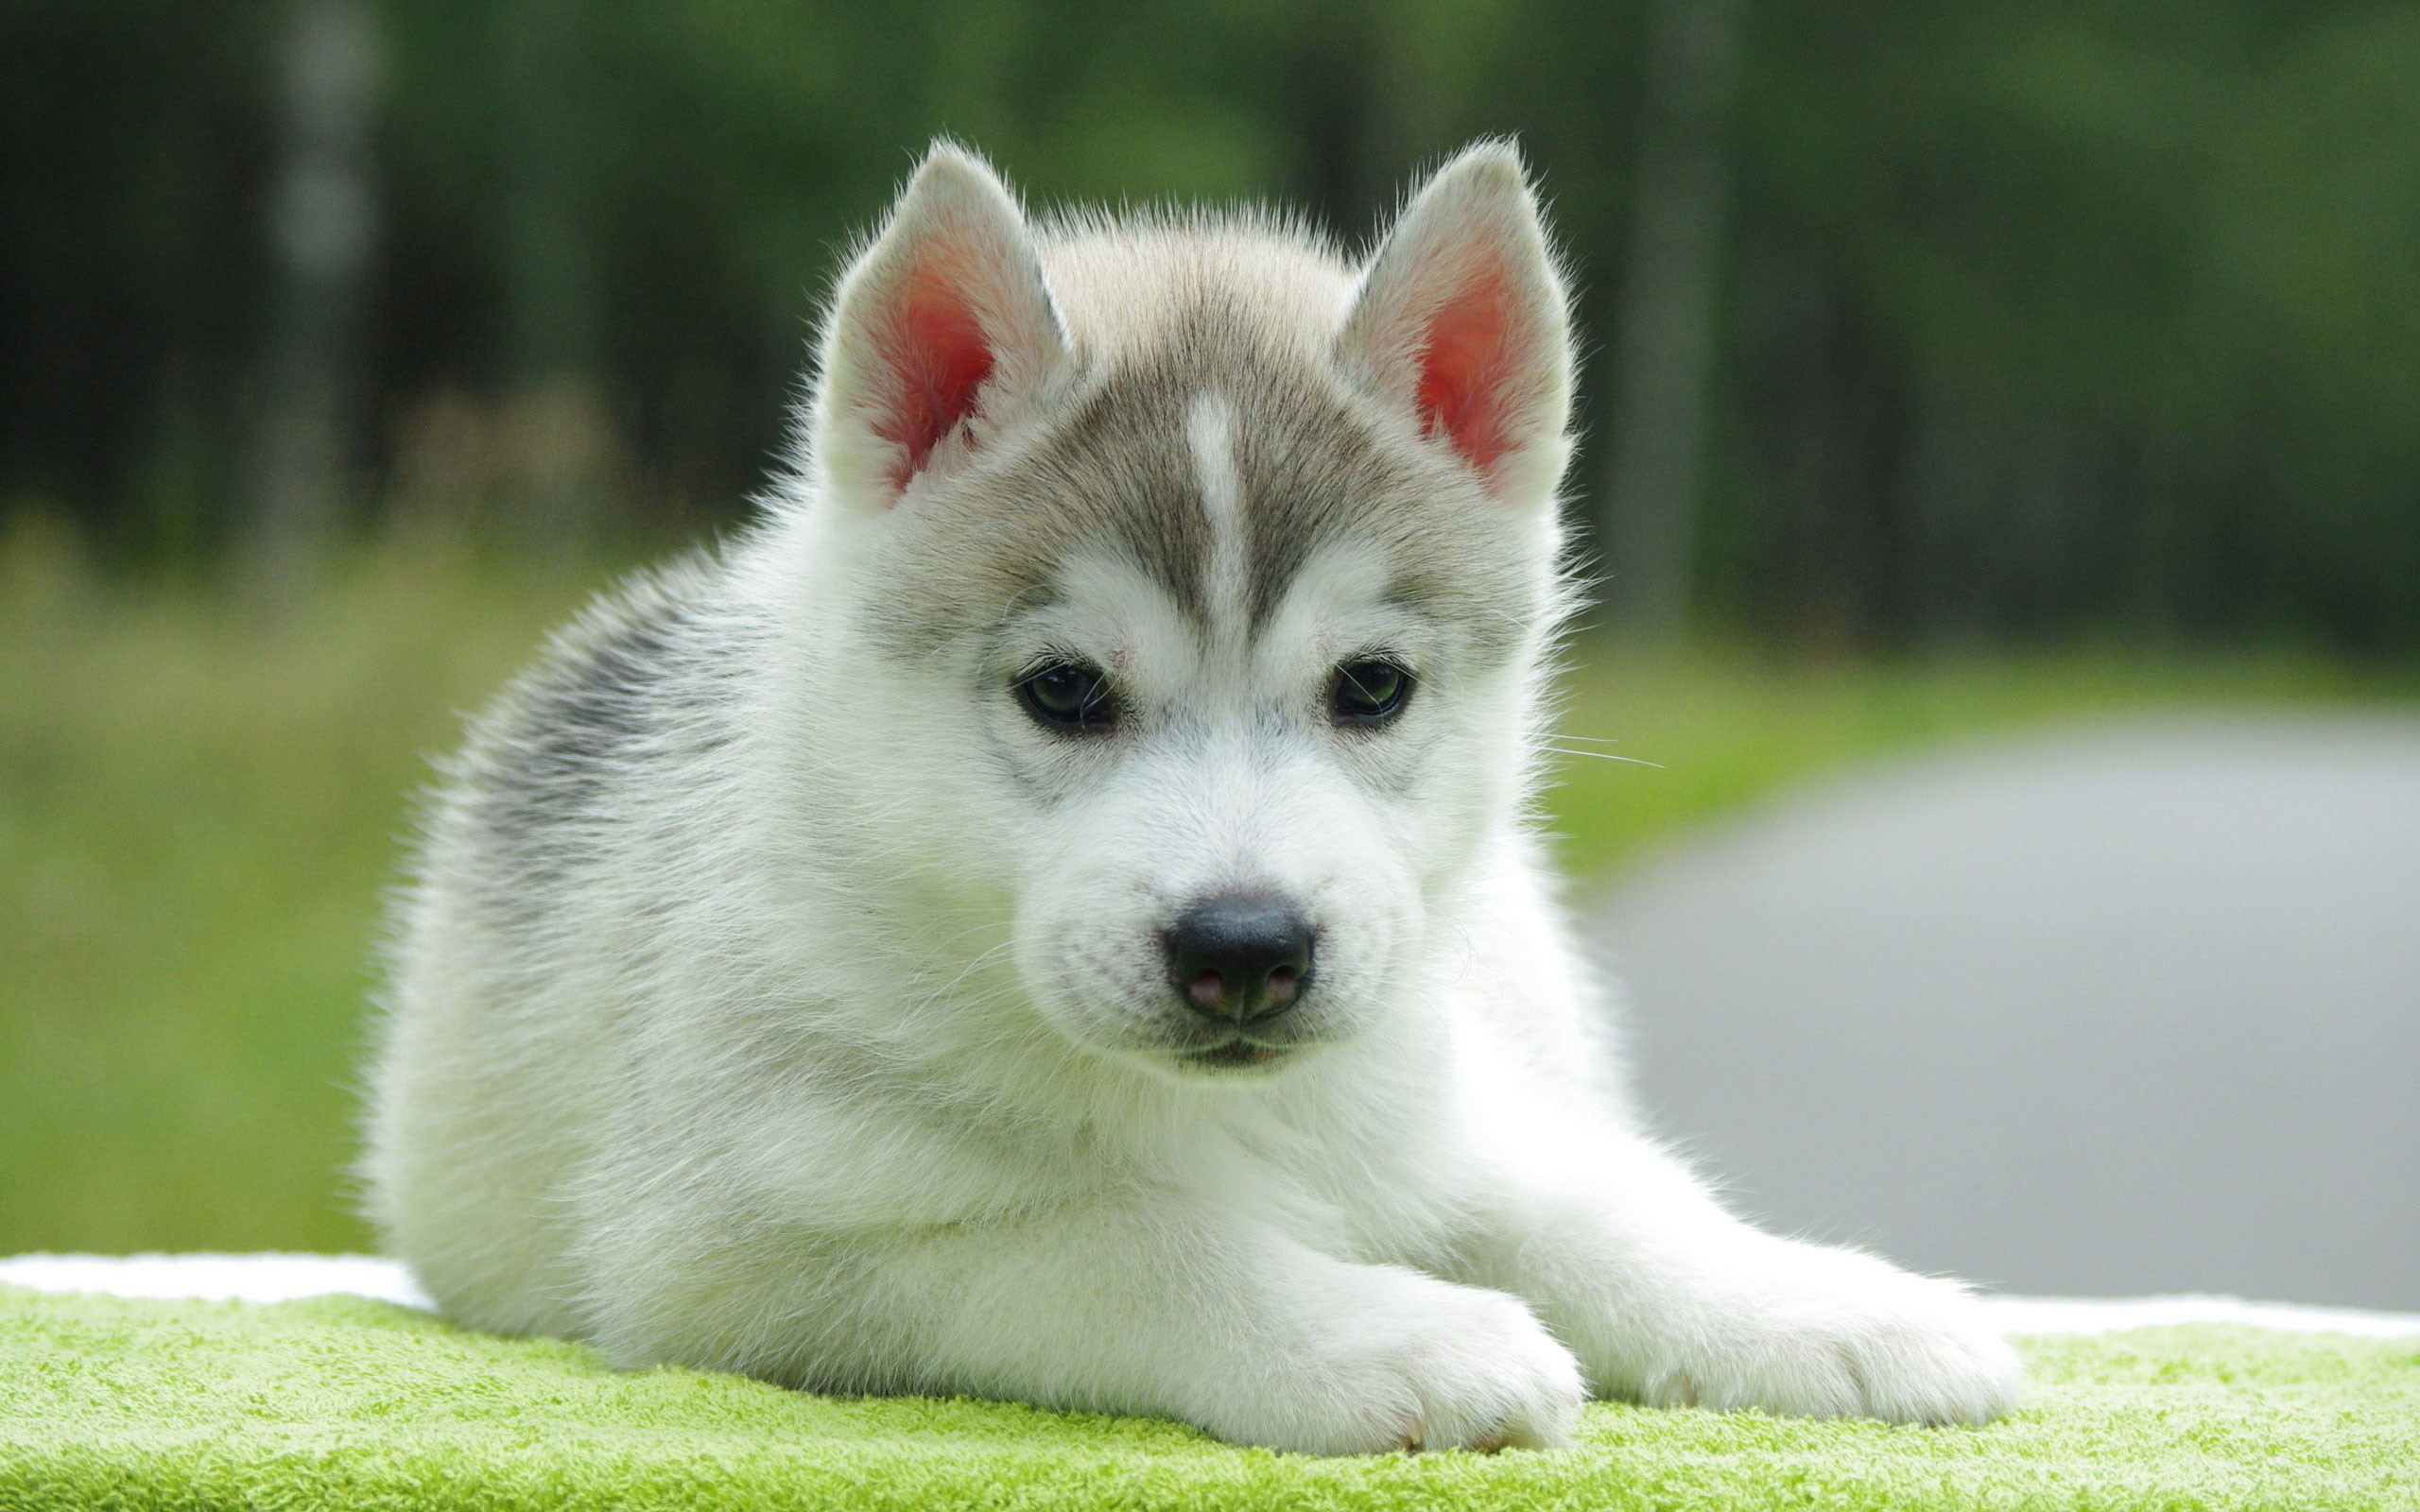 Download free cute puppy wallpapers for your mobile phone by 1600×1200 Cute  Pictures Of Puppies Wallpapers (52 Wallpapers)   Adorable Wallpapers    Pinterest …